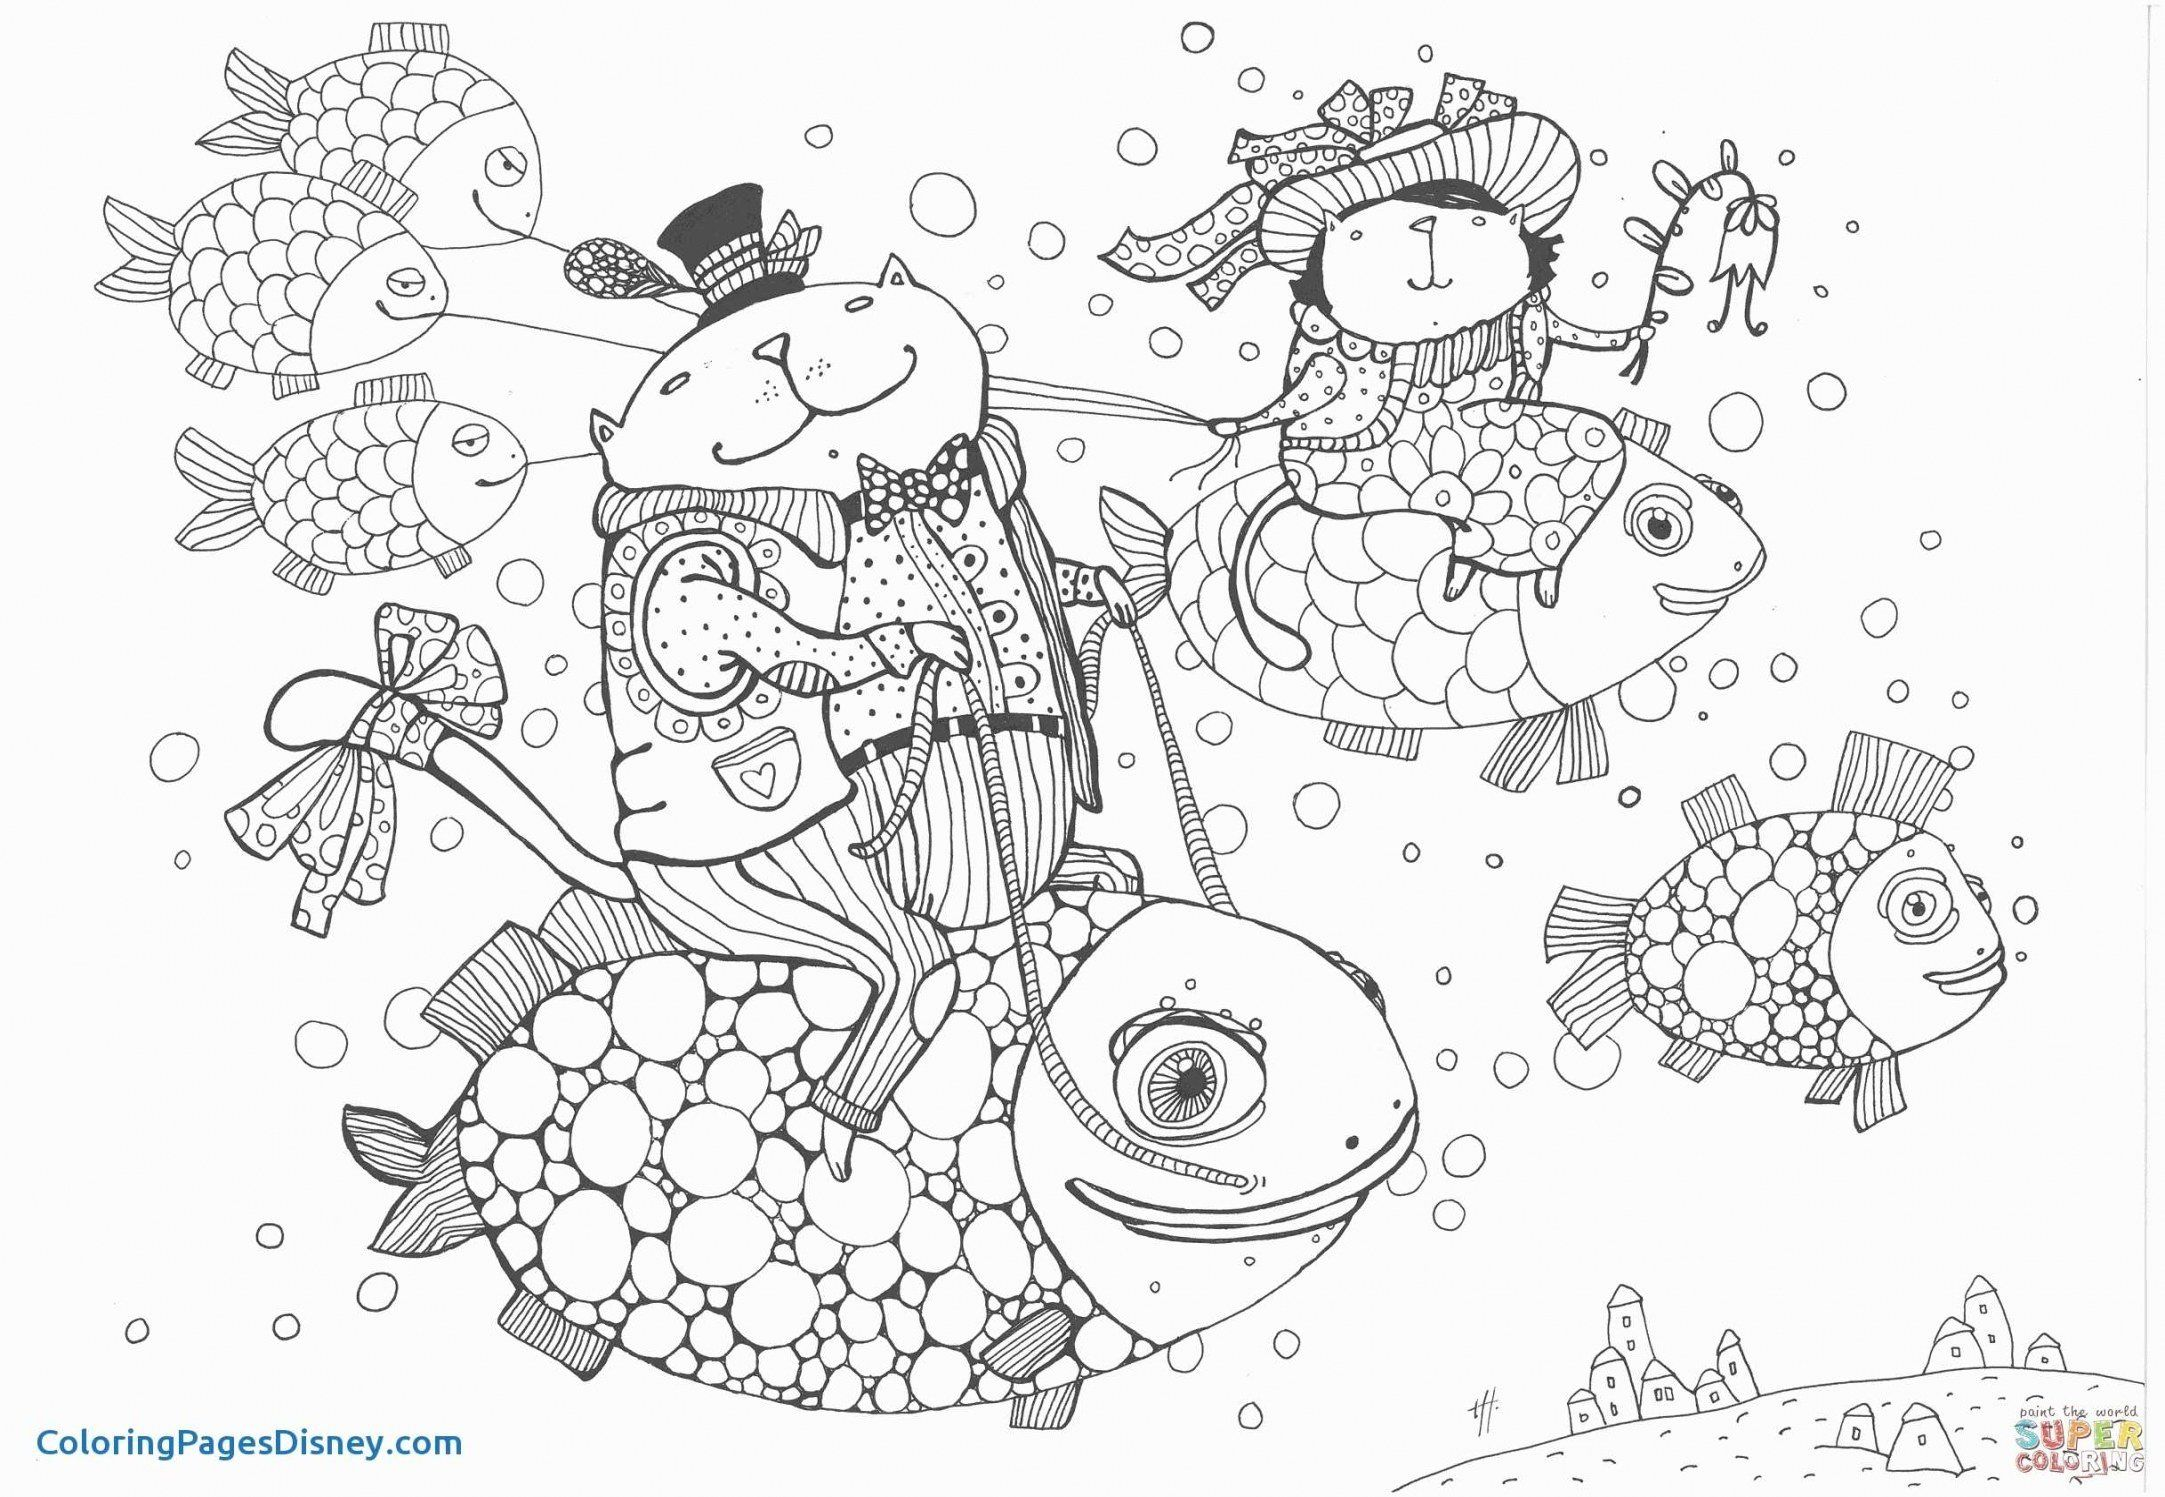 How To Design Coloring Books Lovely Unicorn Colouring Pages Baby Unicorn Coloring Pages Frozen Care Bear Sight Word Dragon Ball